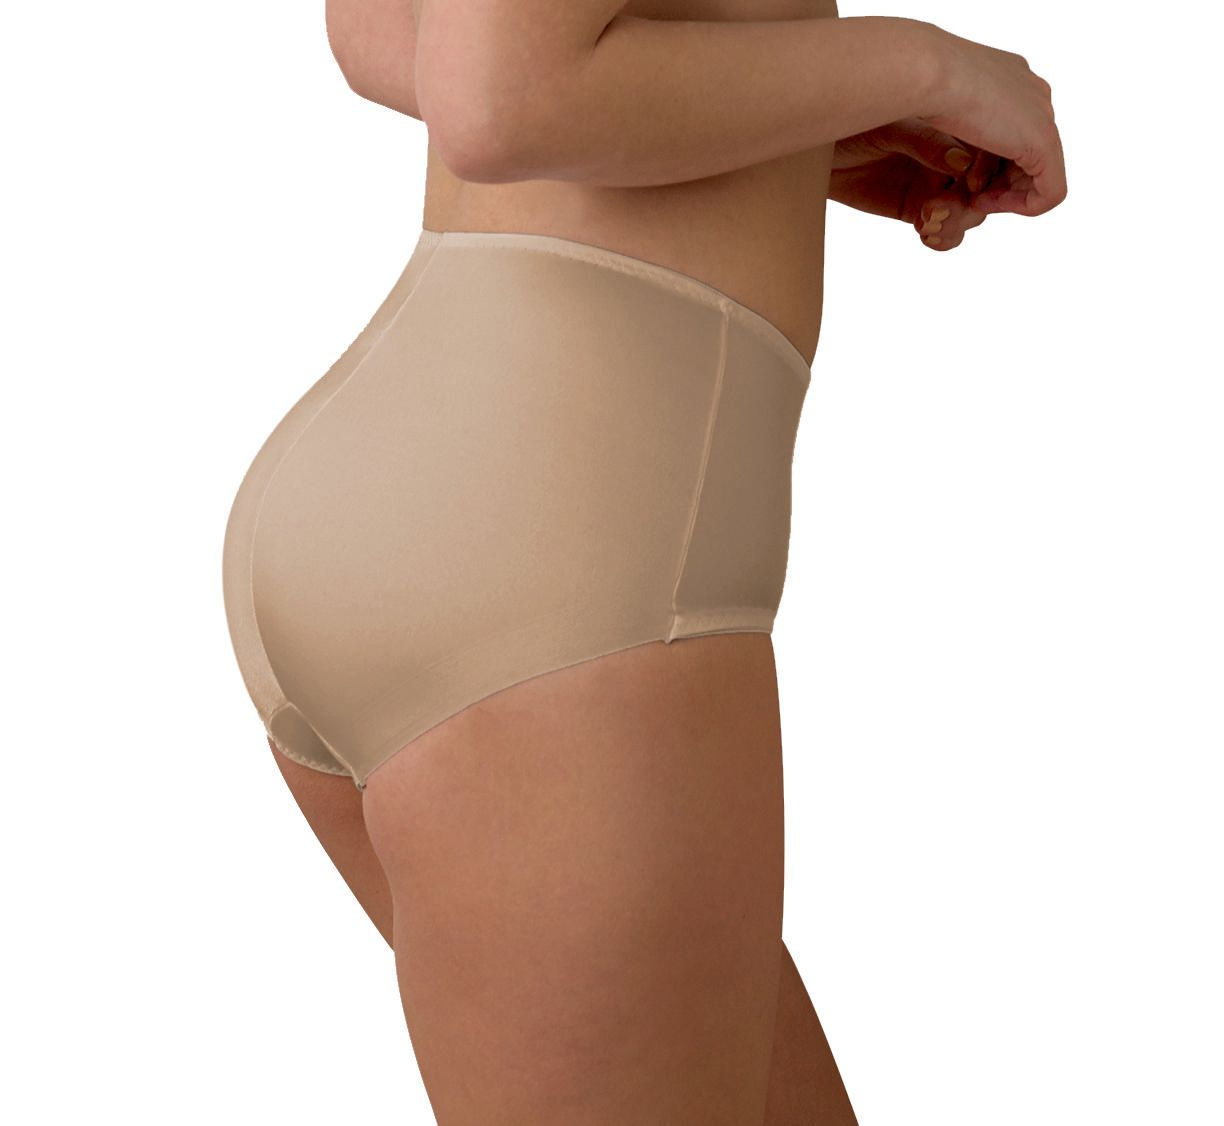 311bad7726 Cupid intimates cupid intimates womens knit shapewear center seam front  panel brief pack of walmart canada